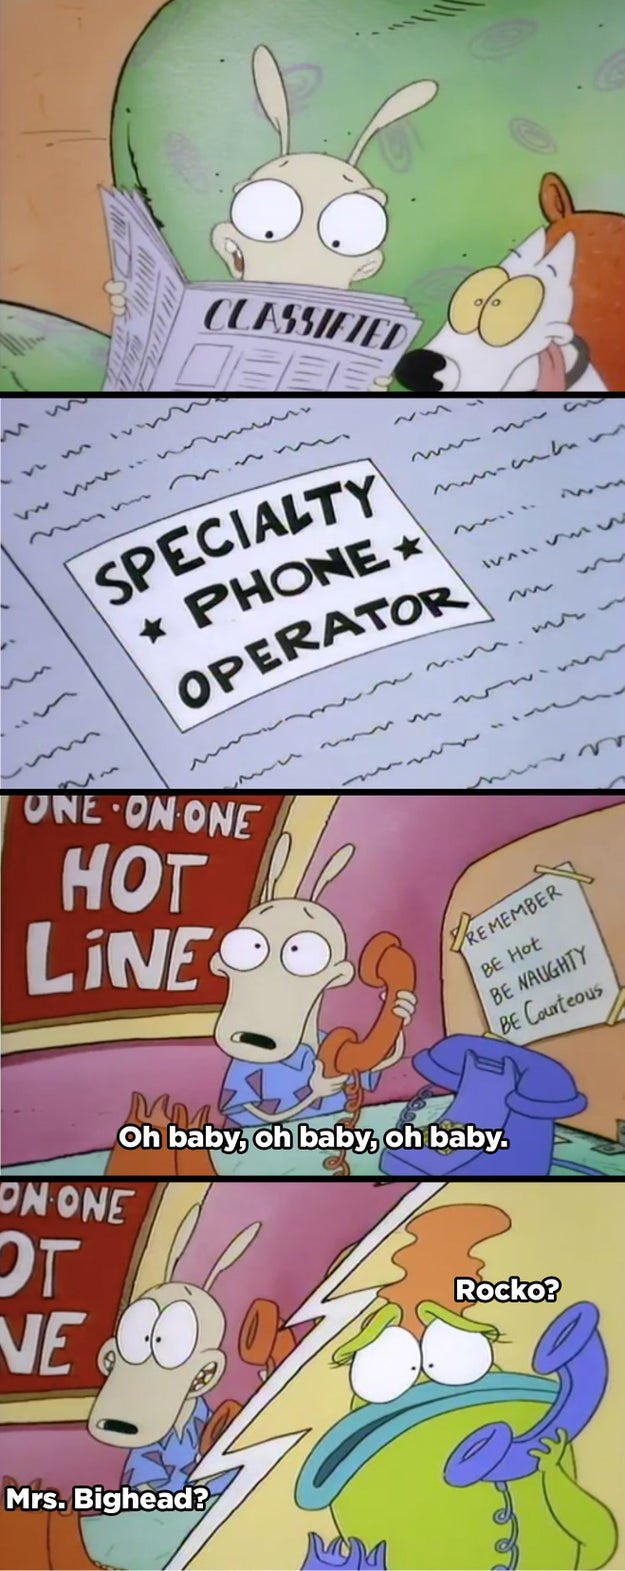 The time Rocko got a job as a phone sex operator and even provided services to Mrs. Bighead.